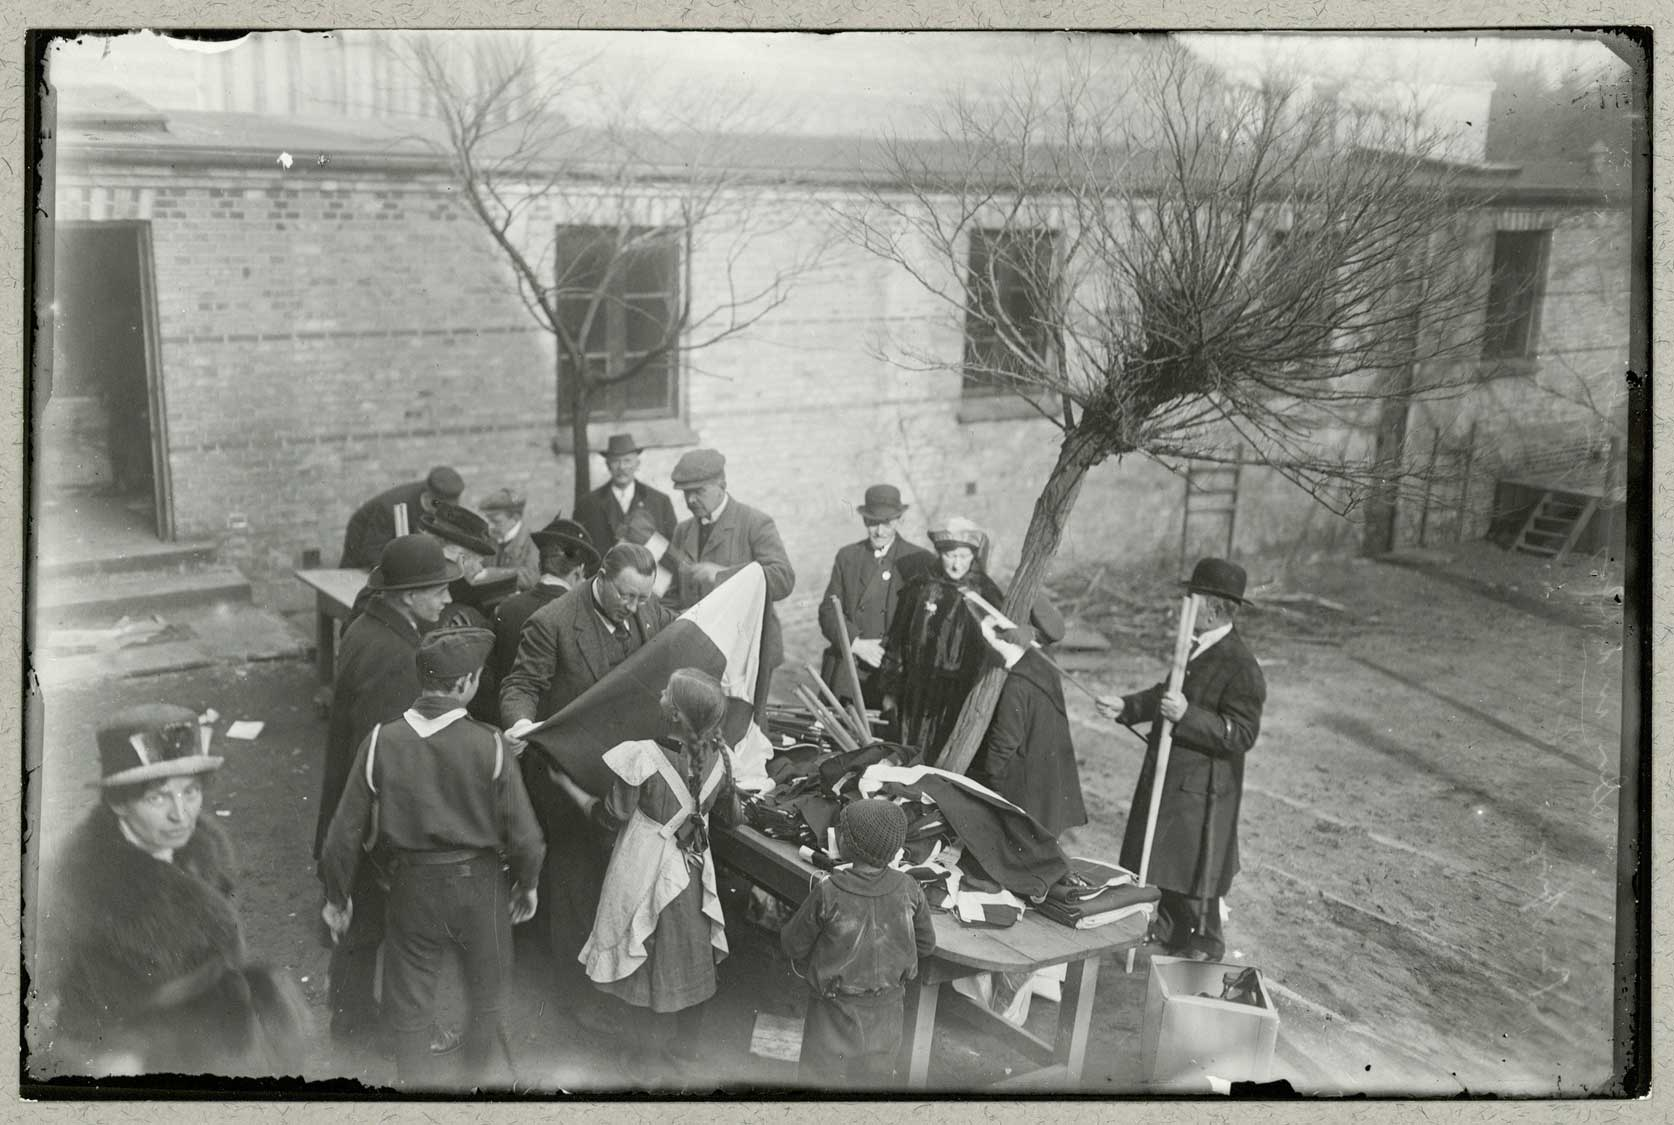 Photograph showing the distribution of Danish flags to people in the city of Flensburg during the days running up to a referendum on 20 March 1920. They were voting for either German or Danish rule, and 75% voted in favour of German.